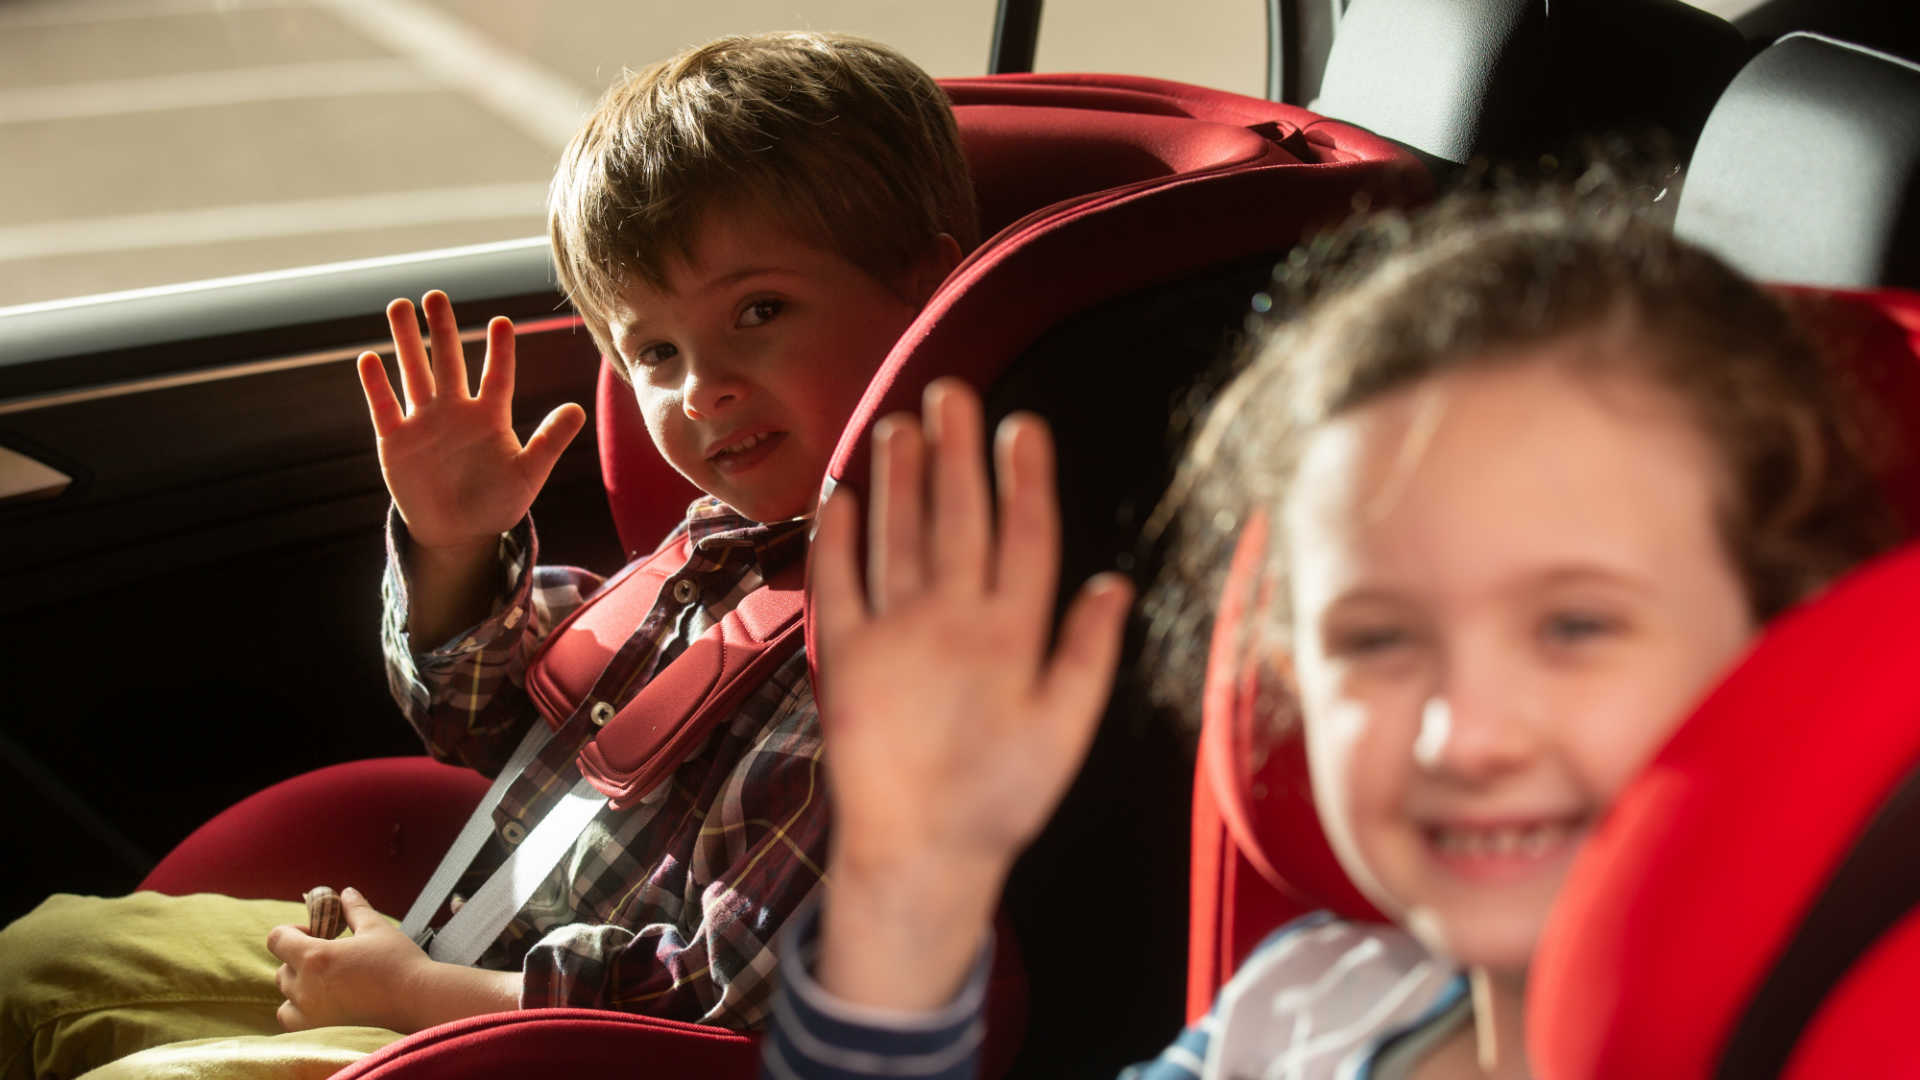 Parents put kids in danger with poorly fitted child seats